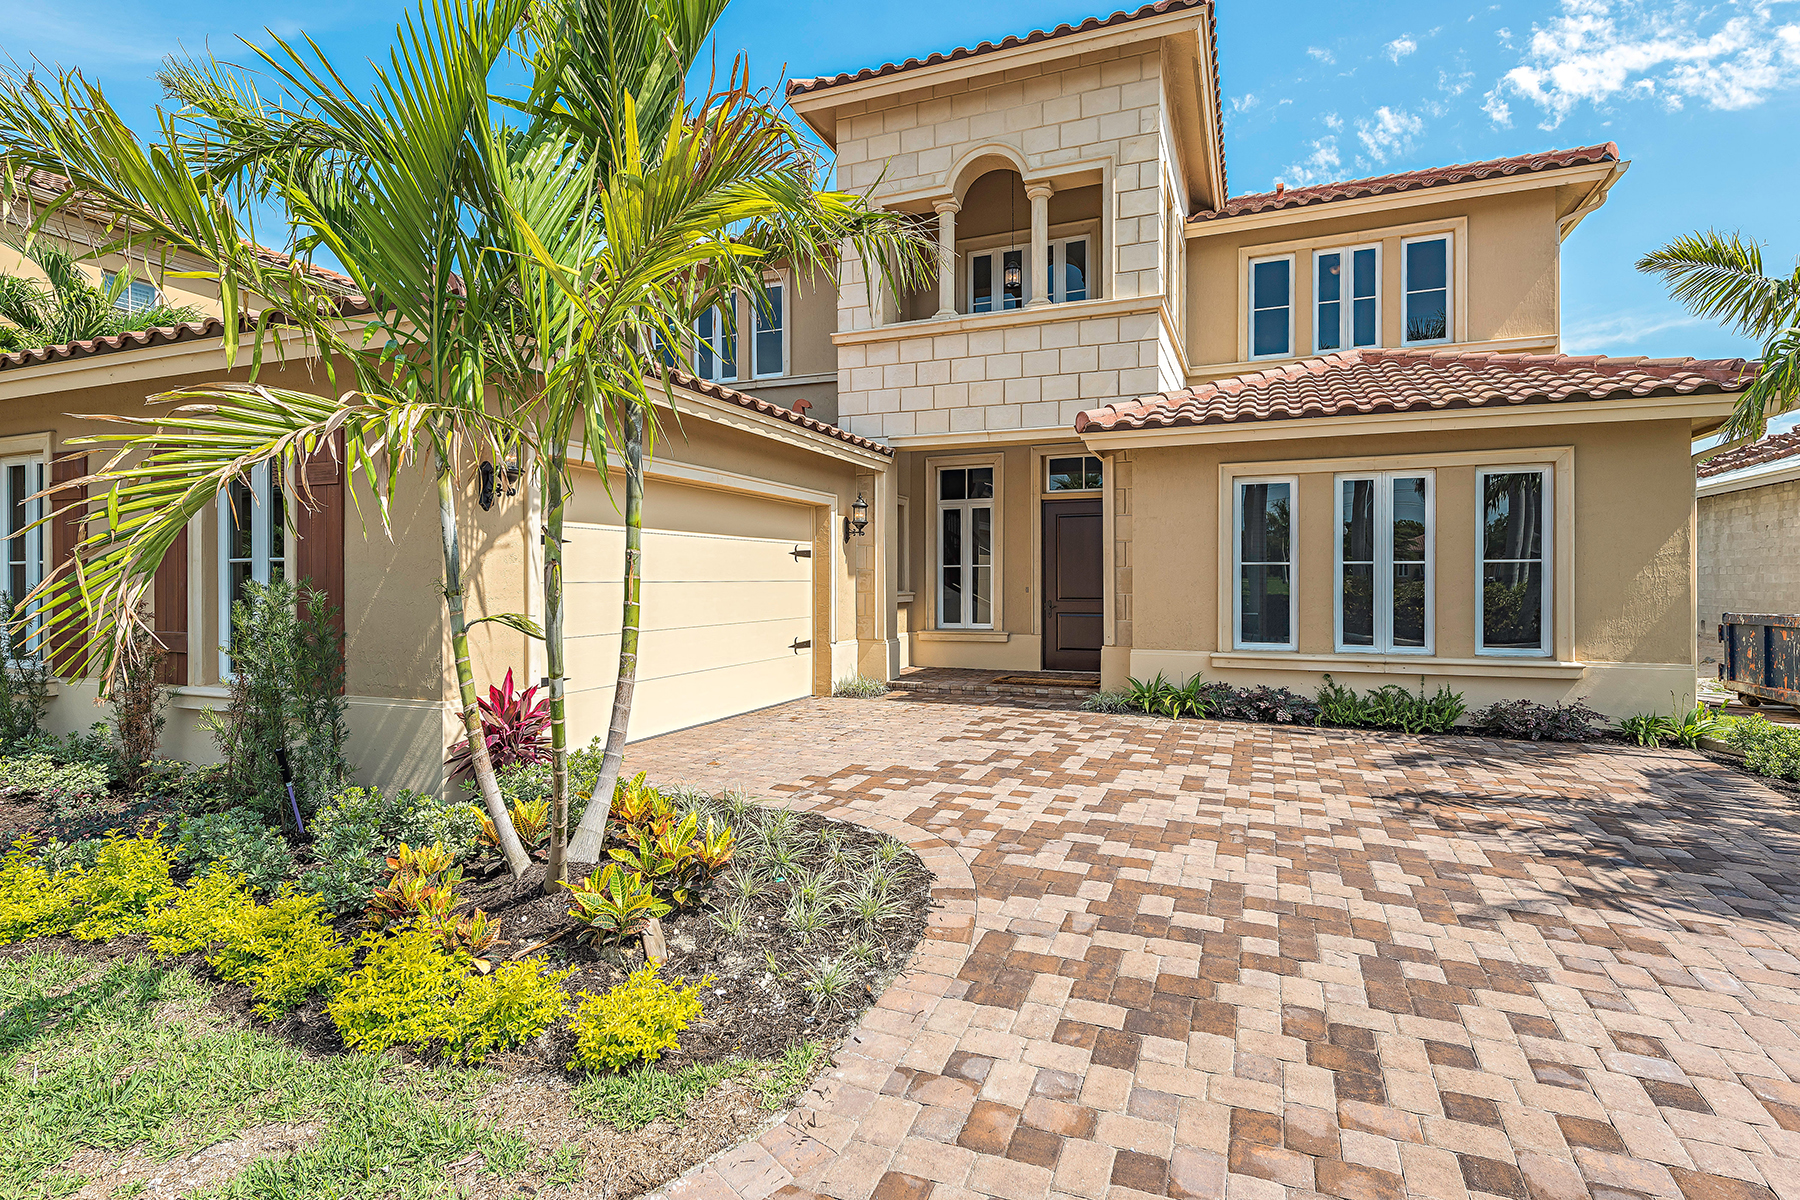 Single Family Home for Sale at Naples 2165 Asti Ct Naples, Florida, 34105 United States